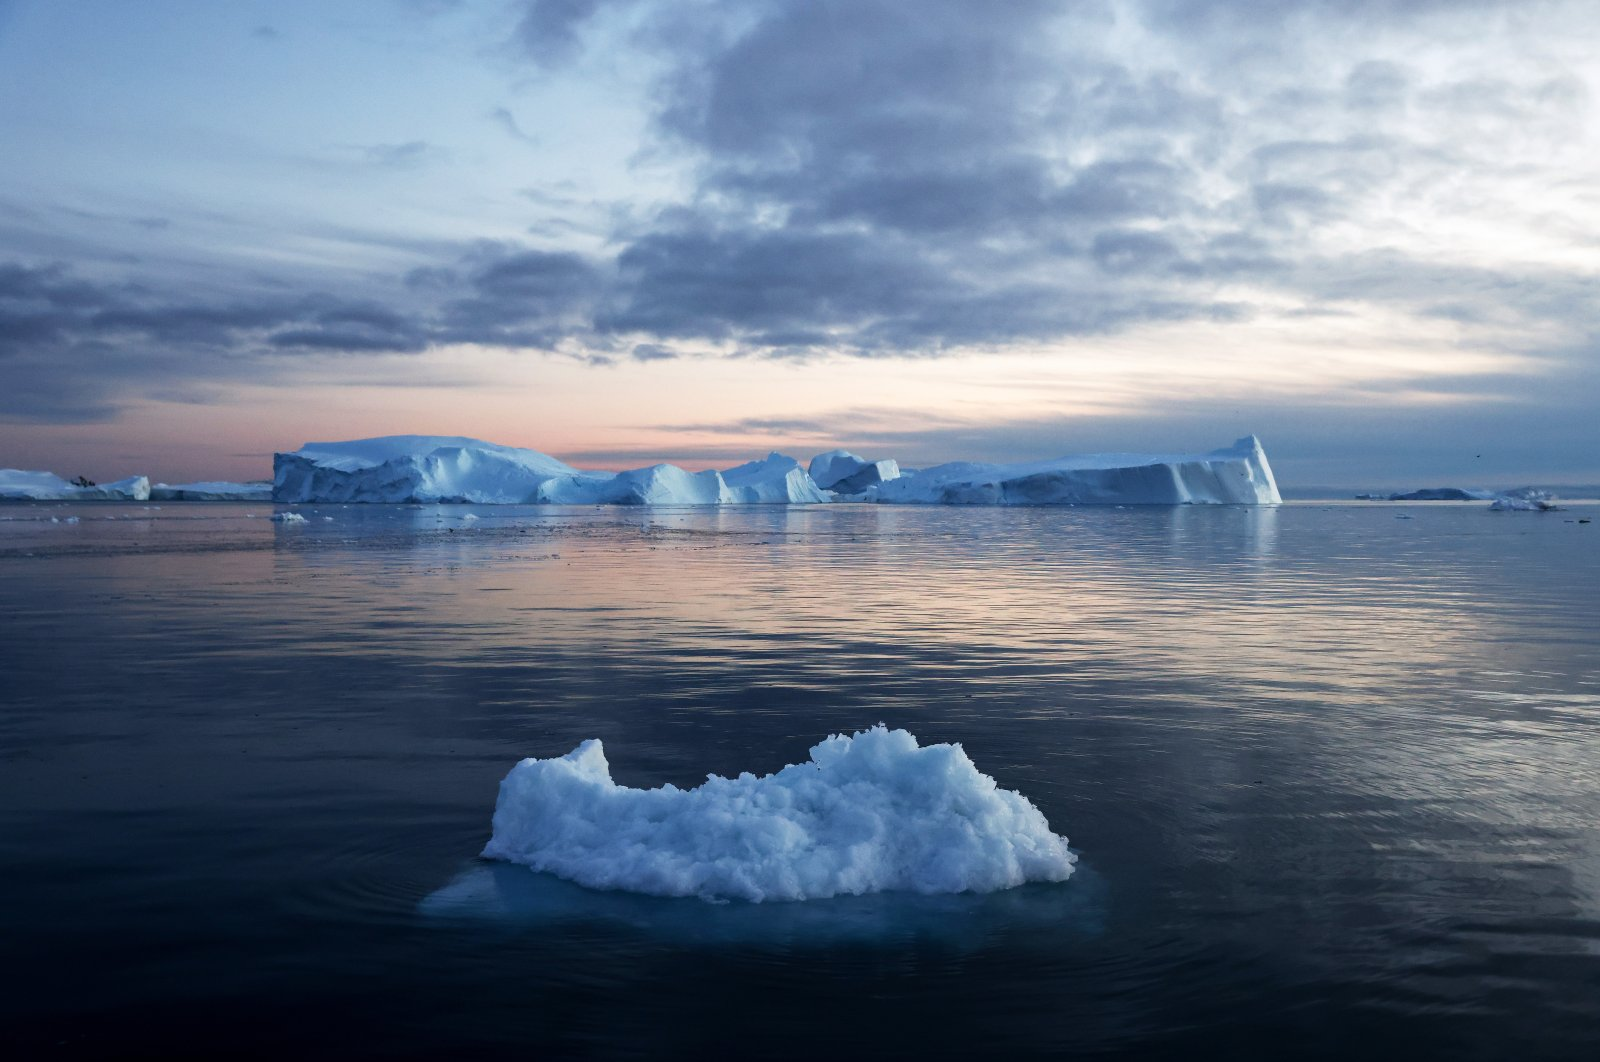 Icebergs that calved from the Sermeq Kujalleq glacier (background) float in the Ilulissat Icefjord, Ilulissat, Greenland, Sept. 5, 2021. (Photo by Getty Images)